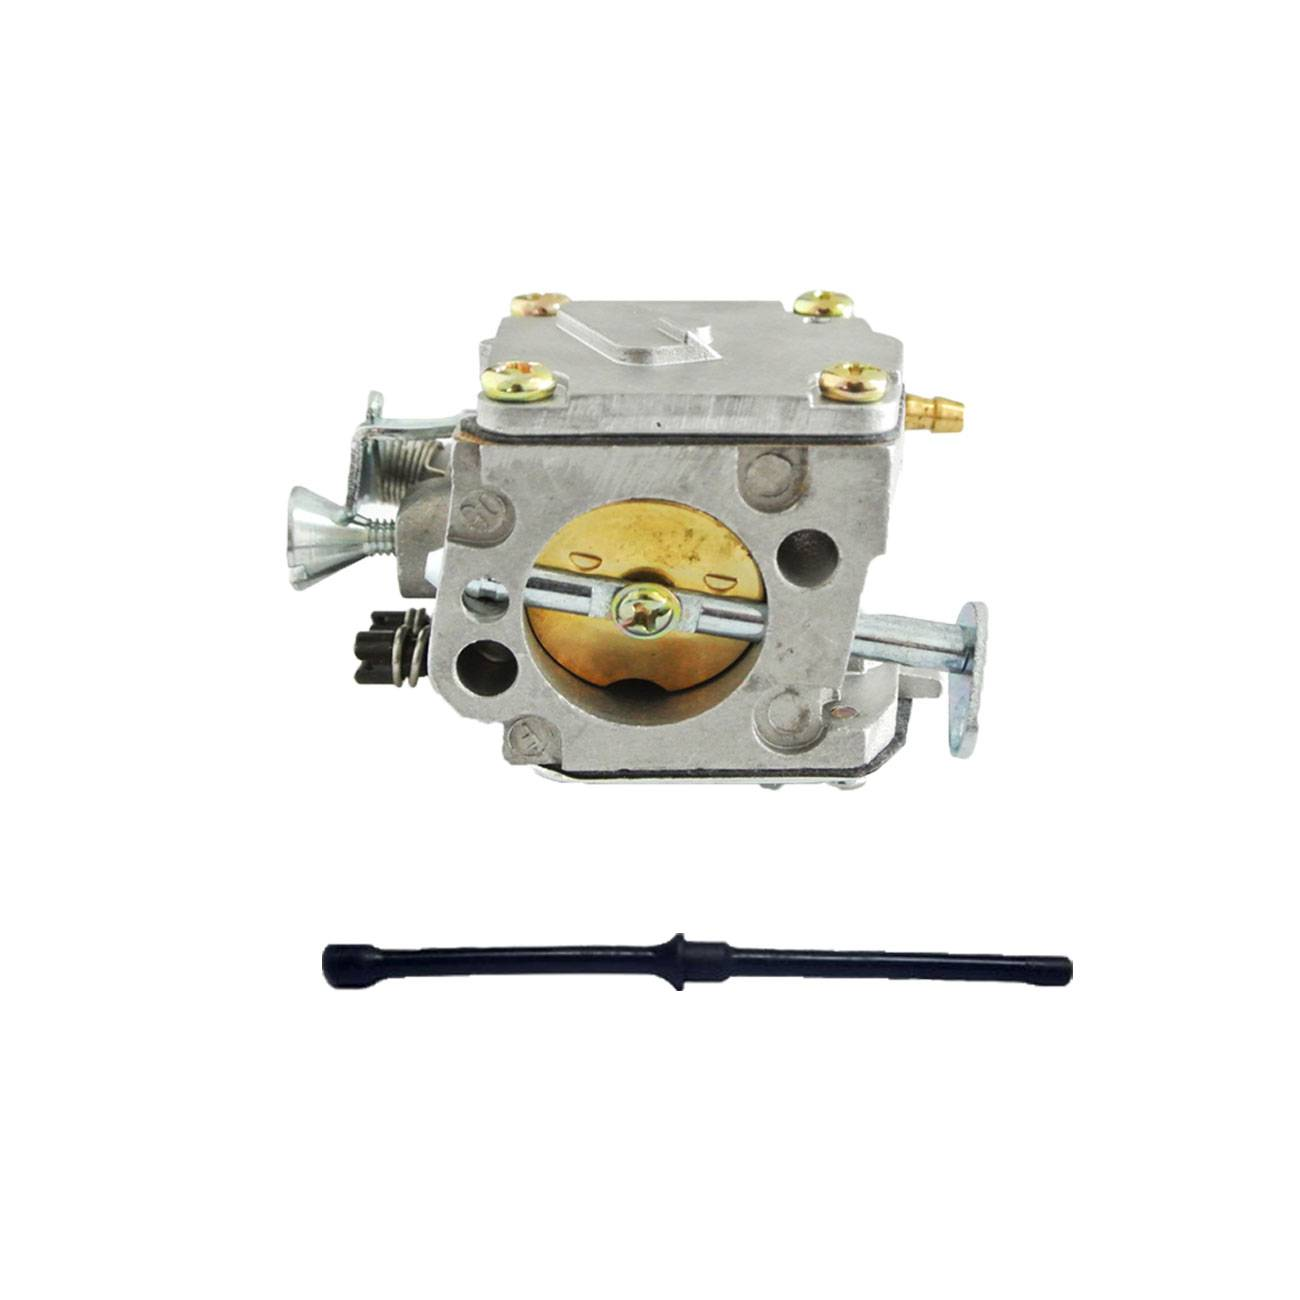 Carburetor & Fuel Line Fit HUSQVARNA 61 268 266 272 XP Chainsaw Motor Parts